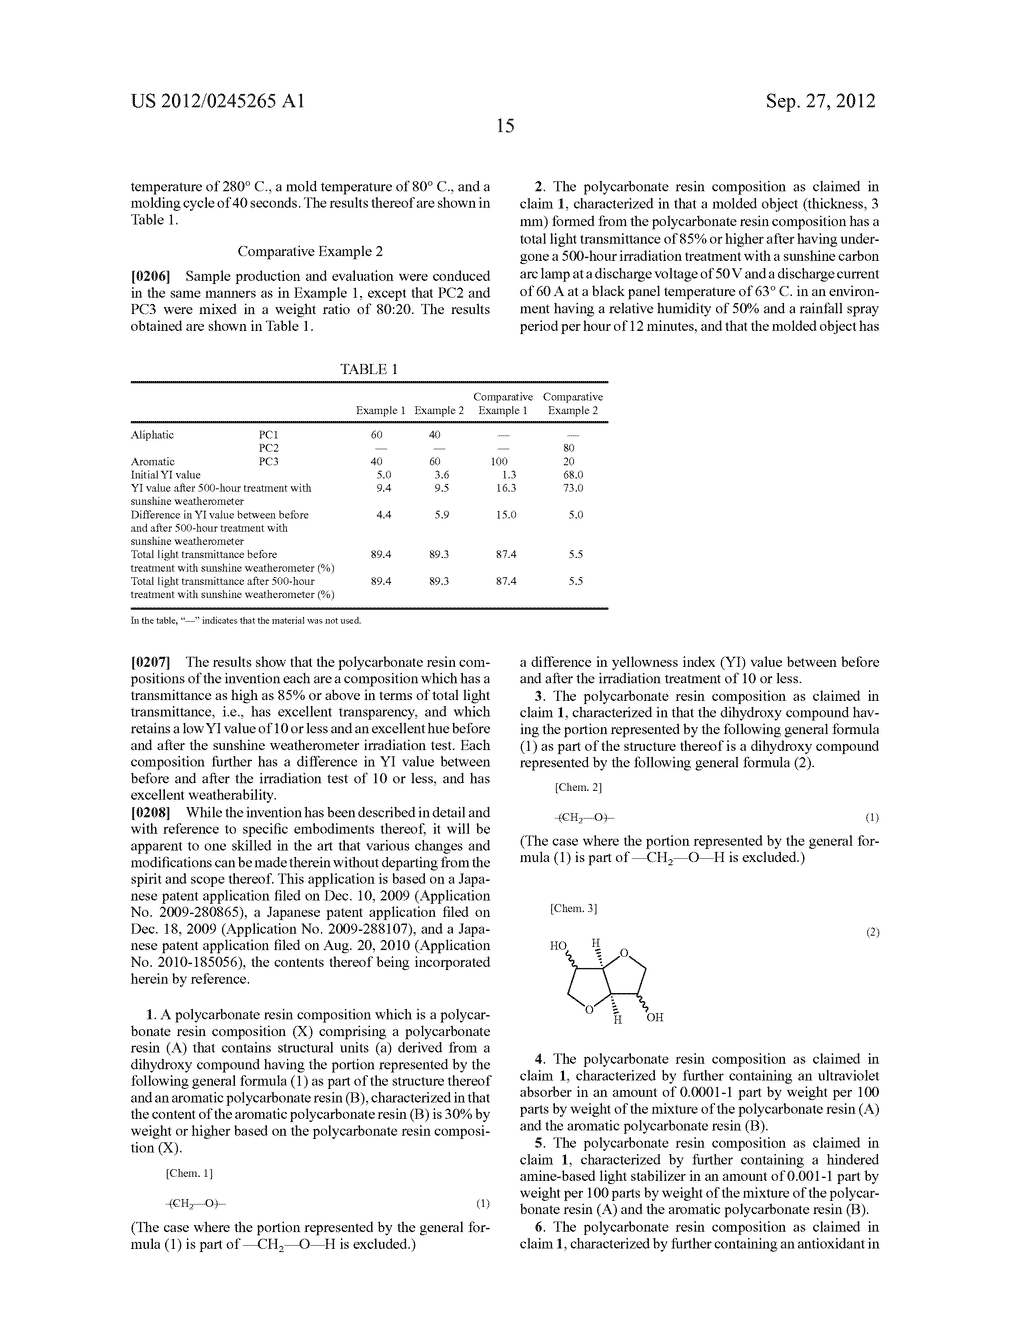 POLYCARBONATE RESIN COMPOSITION AND MOLDED ARTICLE - diagram, schematic, and image 16